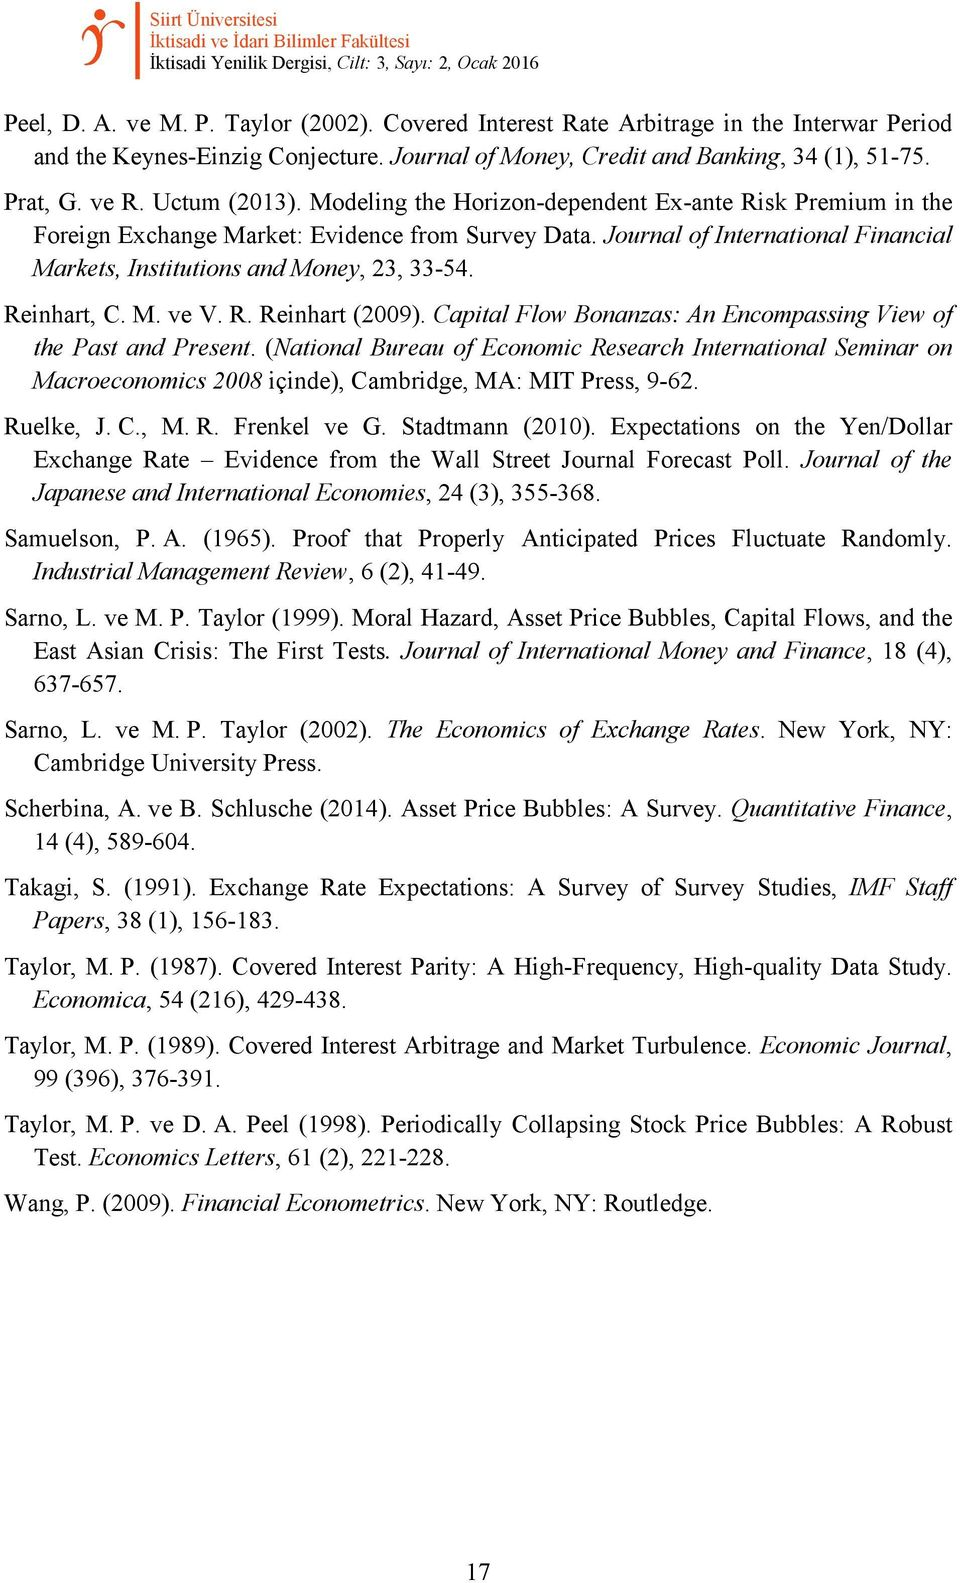 Modeling the Horizon-dependent Ex-ante Risk Premium in the Foreign Exchange Market: Evidence from Survey Data. Journal of International Financial Markets, Institutions and Money, 23, 33-54.